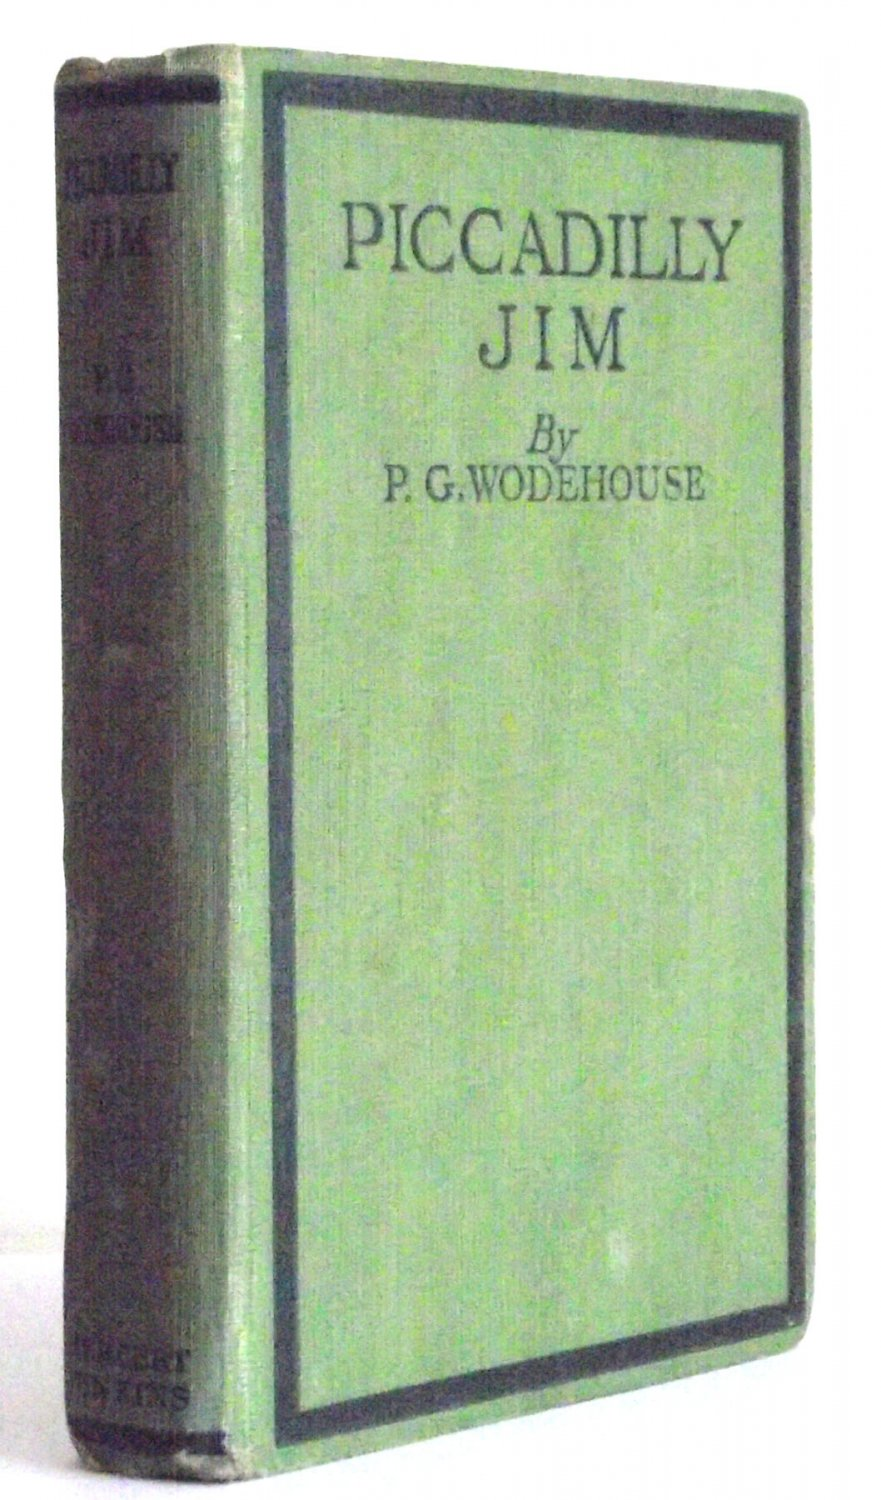 P.G. Wodehouse Piccadilly Jim Popular Edition Published March 1920